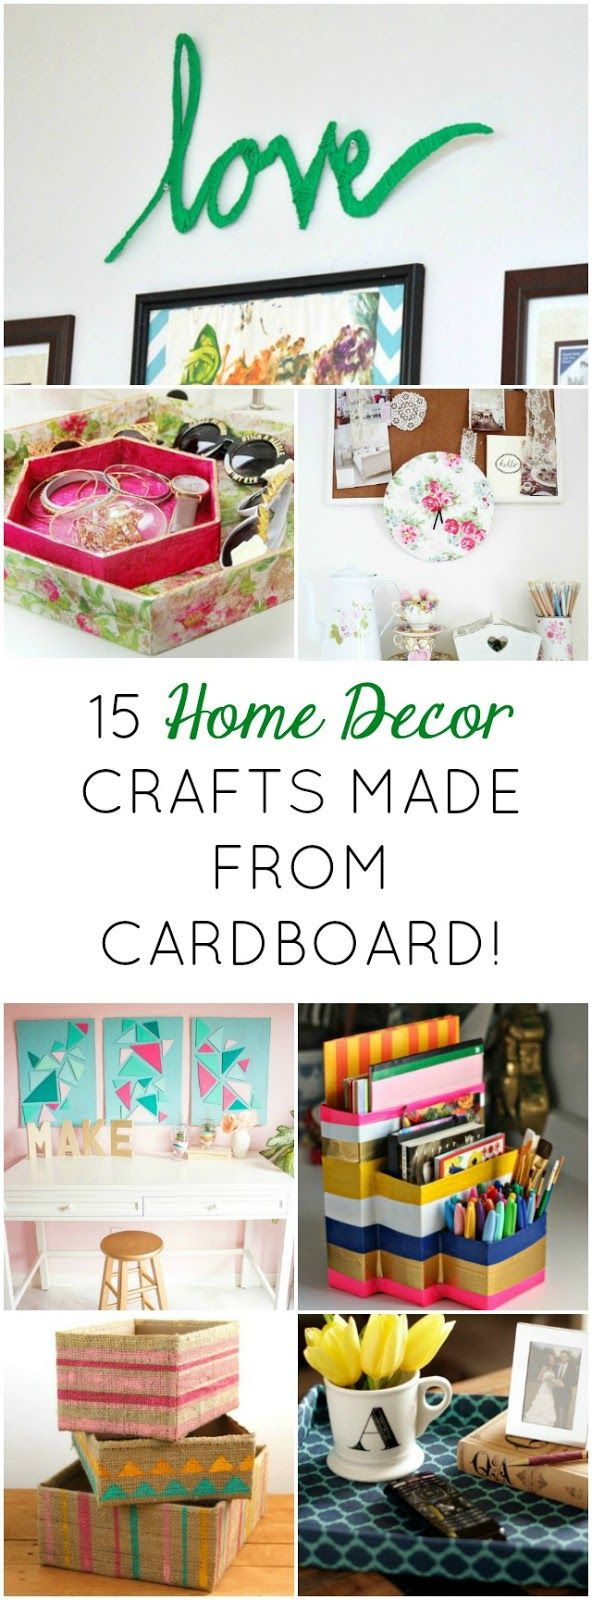 15 Clever Ways to Craft with Cardboard Boxes | Cardboard boxes ...